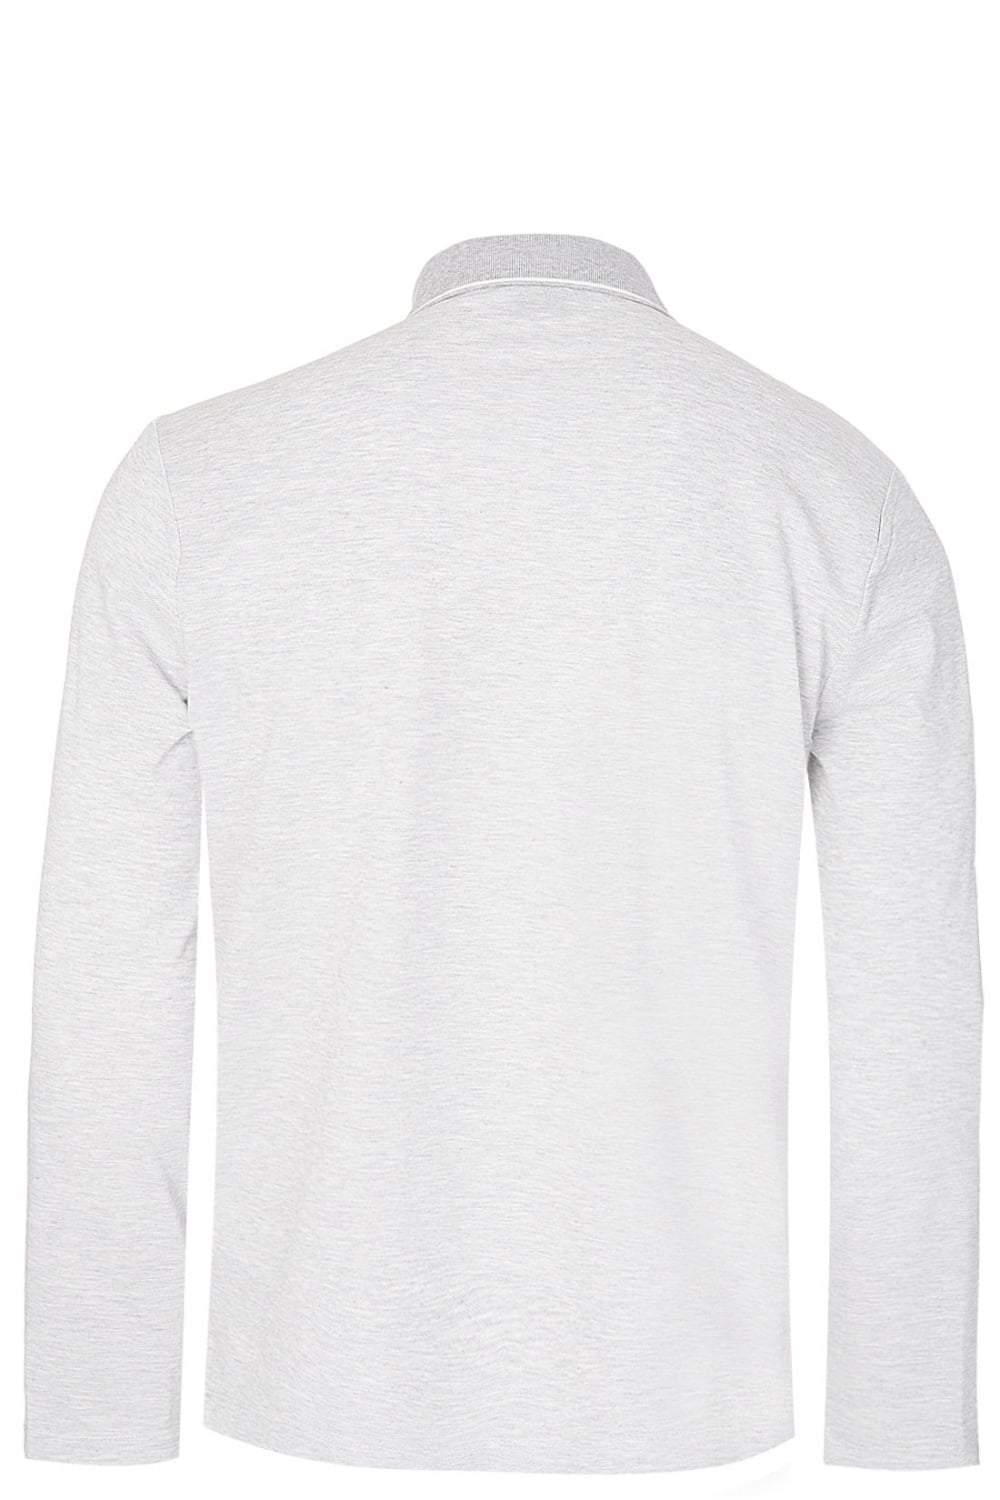 77950d0b5 BOSS Hugo Boss Pearl 03 Long Sleeved Polo Grey - Clothing from ...